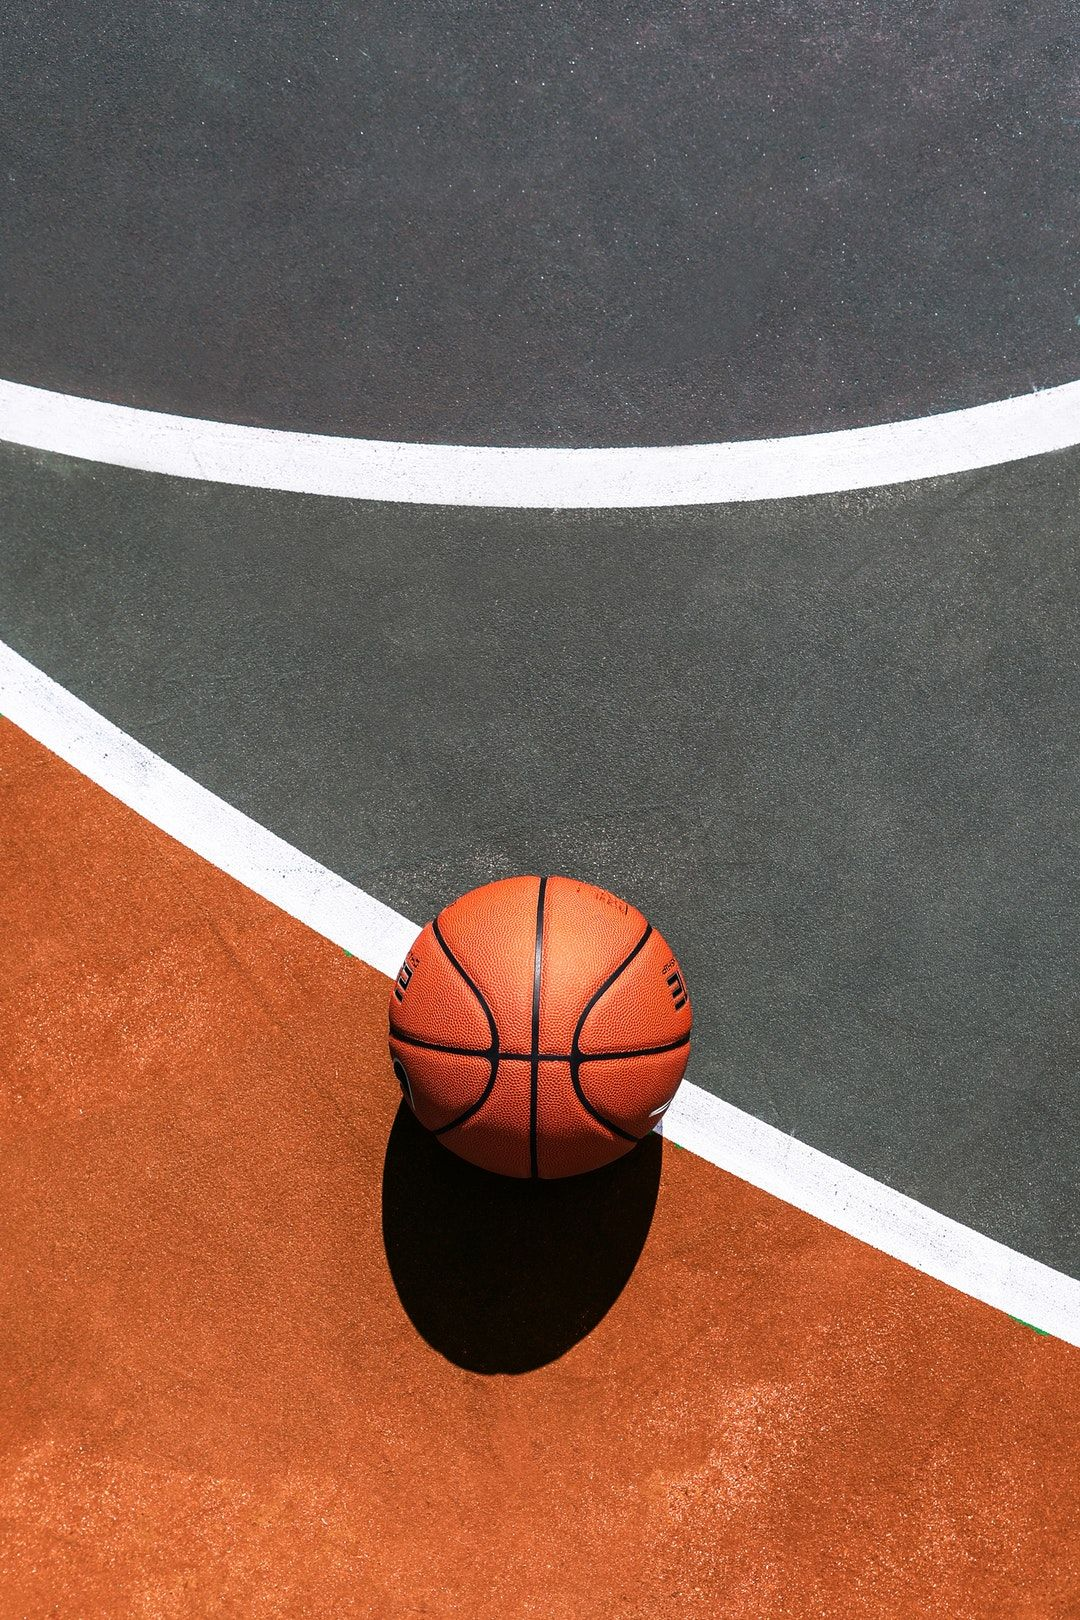 Download This Free Hd Photo Of Basketball Court Ball And Sport In Boston United States By Tommy Bebo Tommybe Basketball Wallpaper Basketball Sports Images